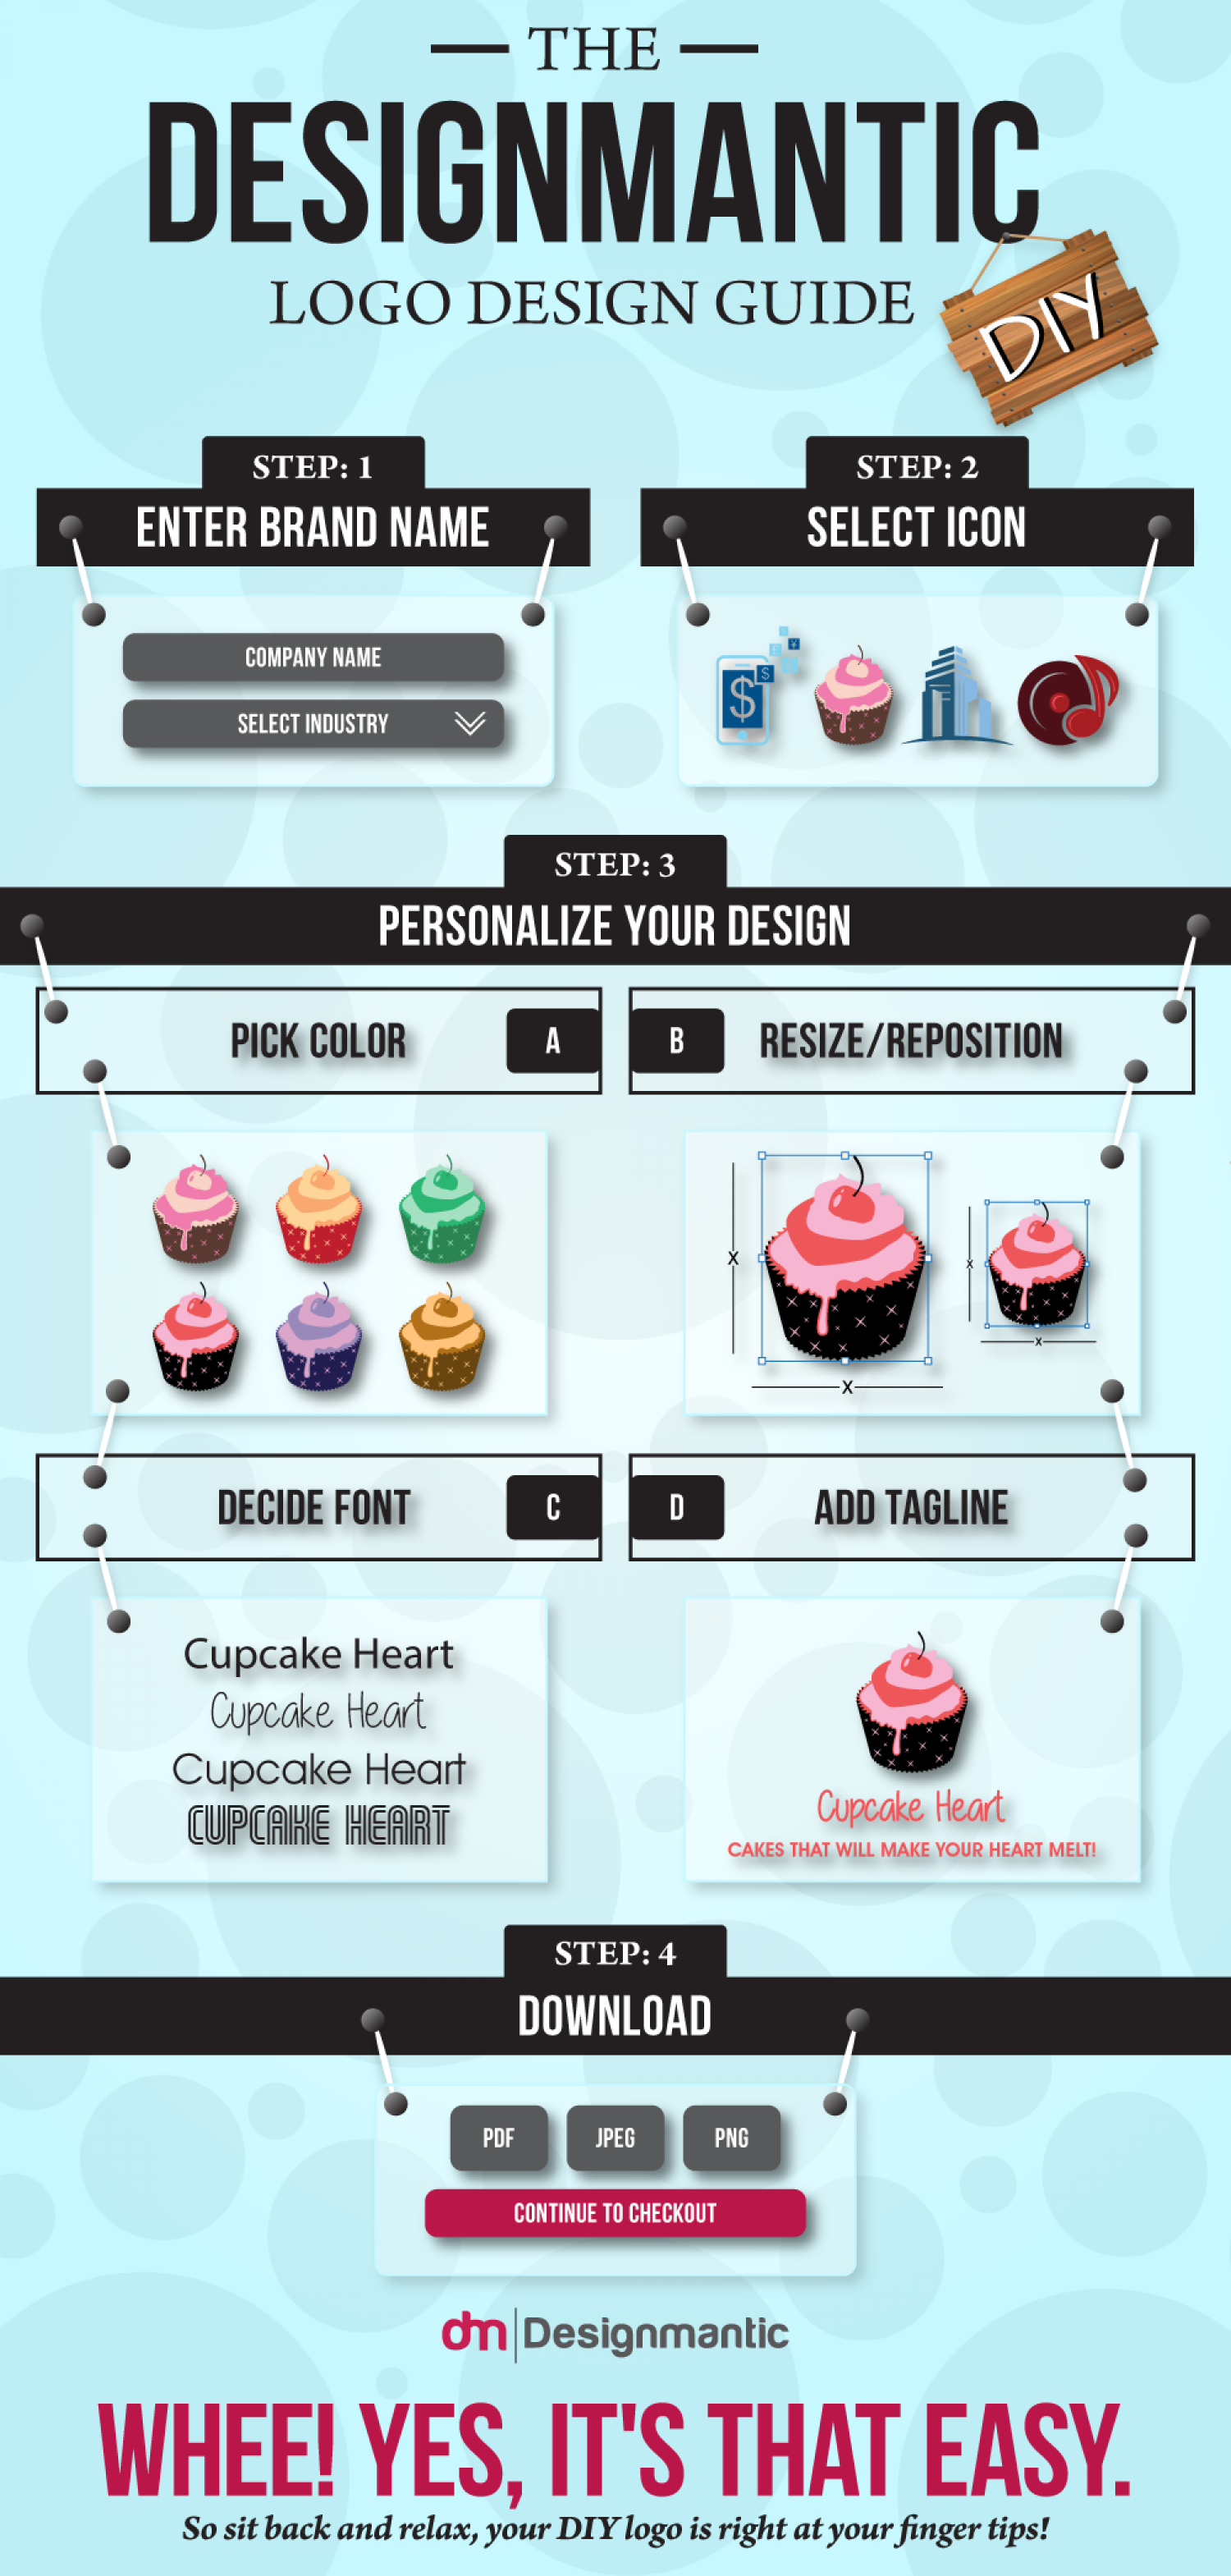 The DesignMantic Logo Design Guide Infographic